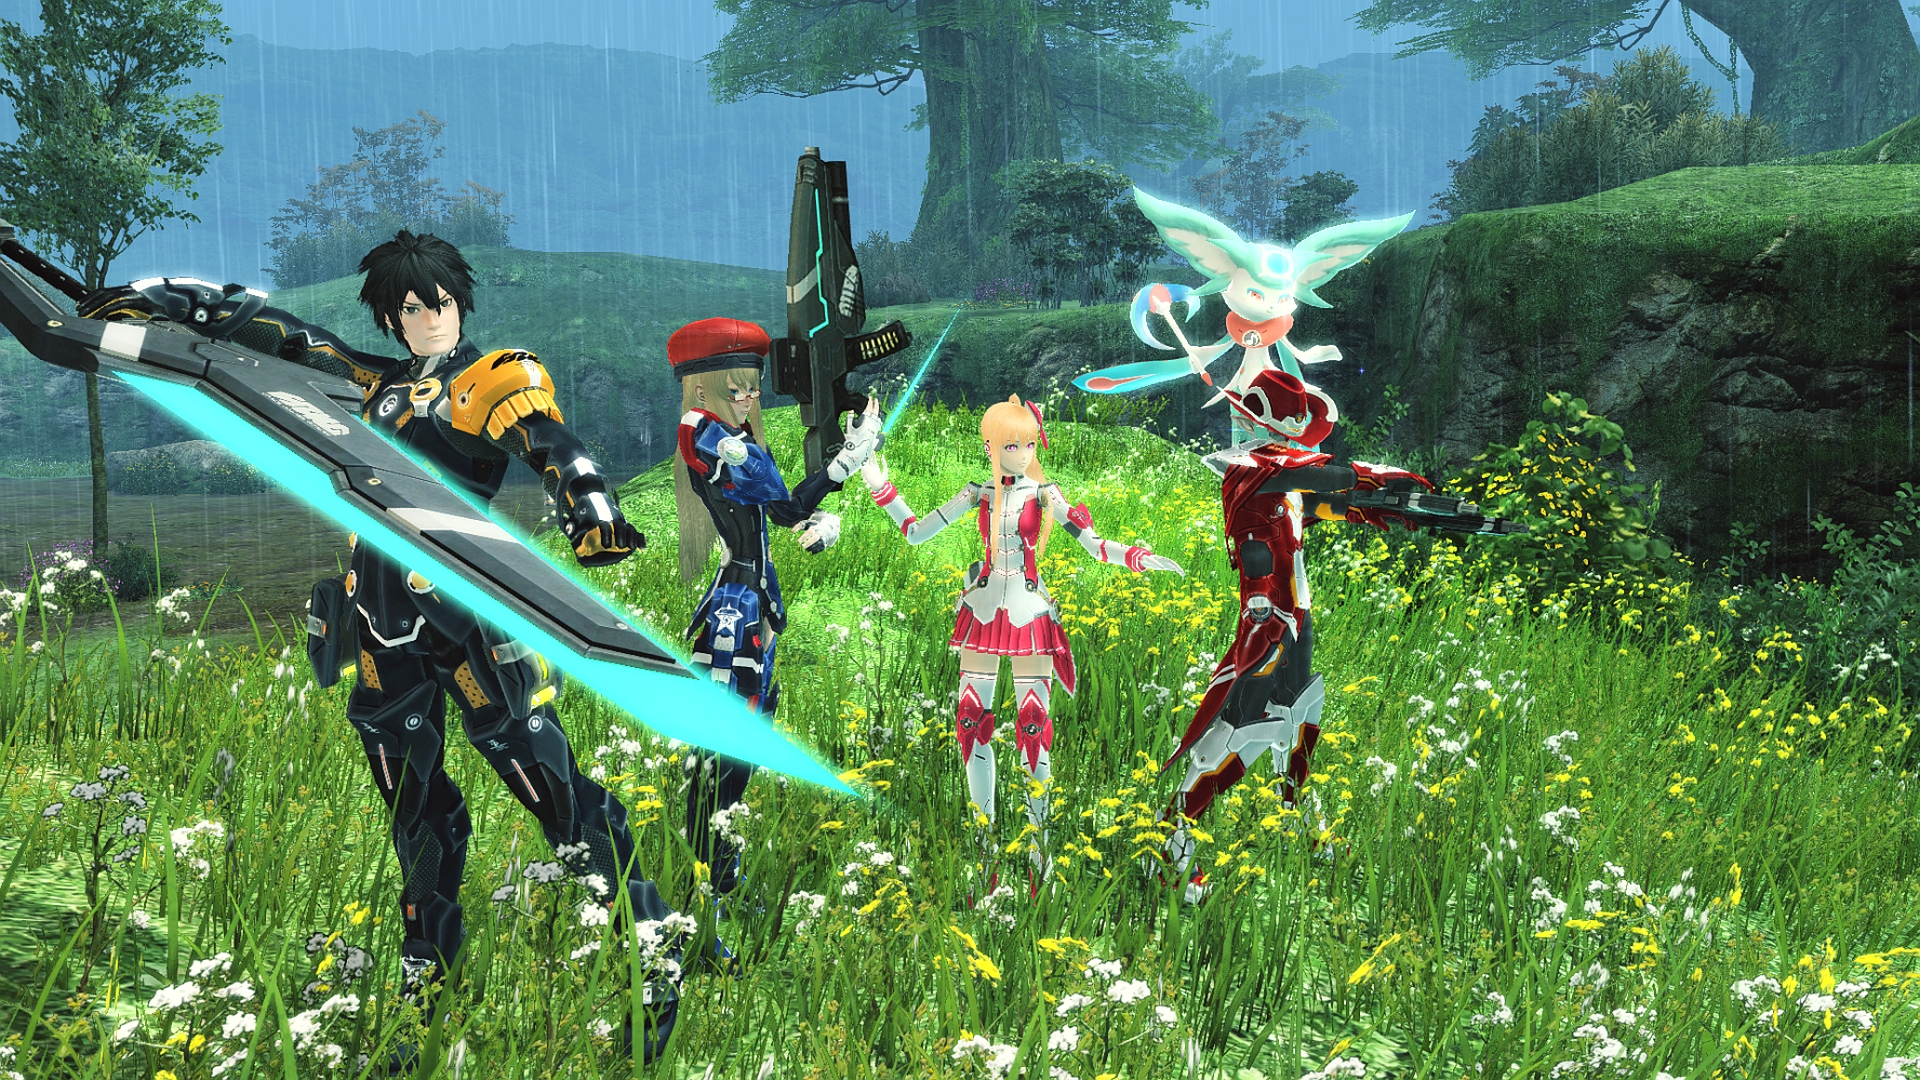 Phantasy Star Online 2 Closed Beta Test Signup Open For North America